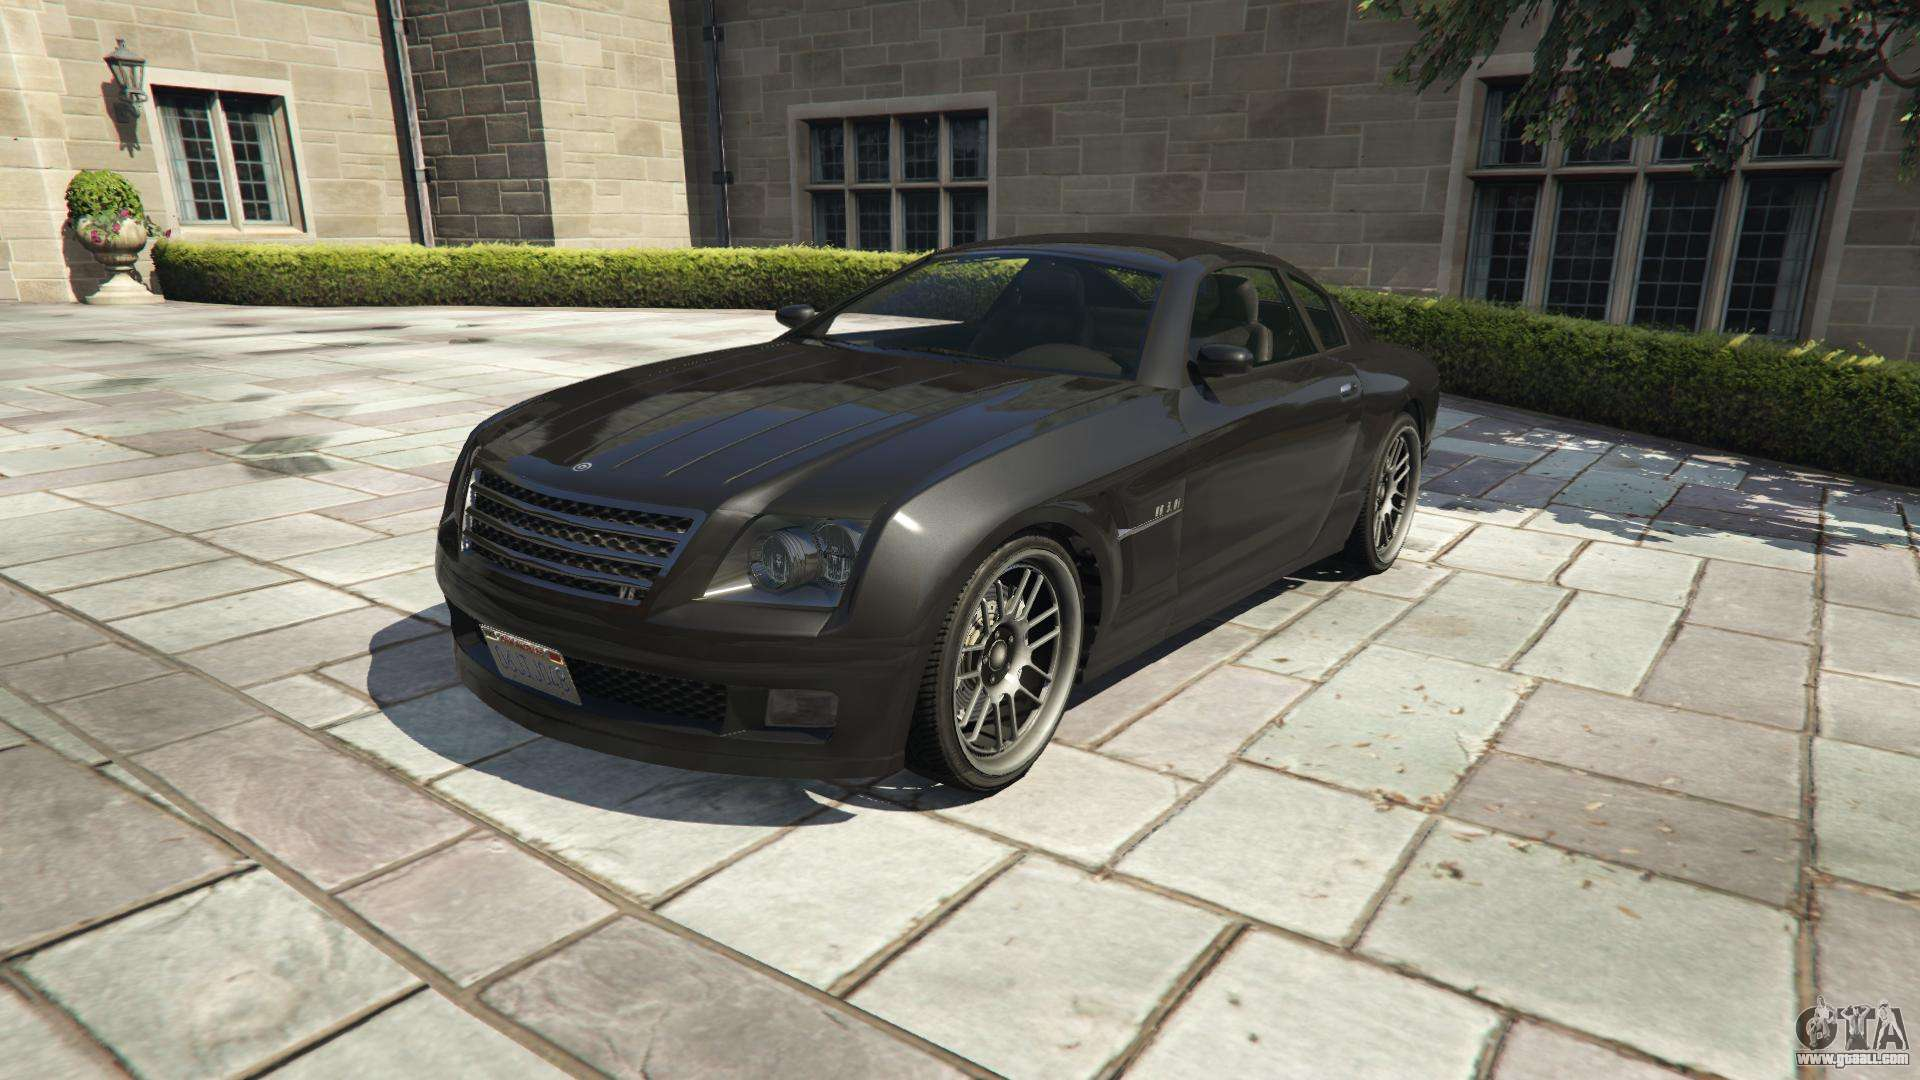 Shyster Fusilade of GTA 5 - front view